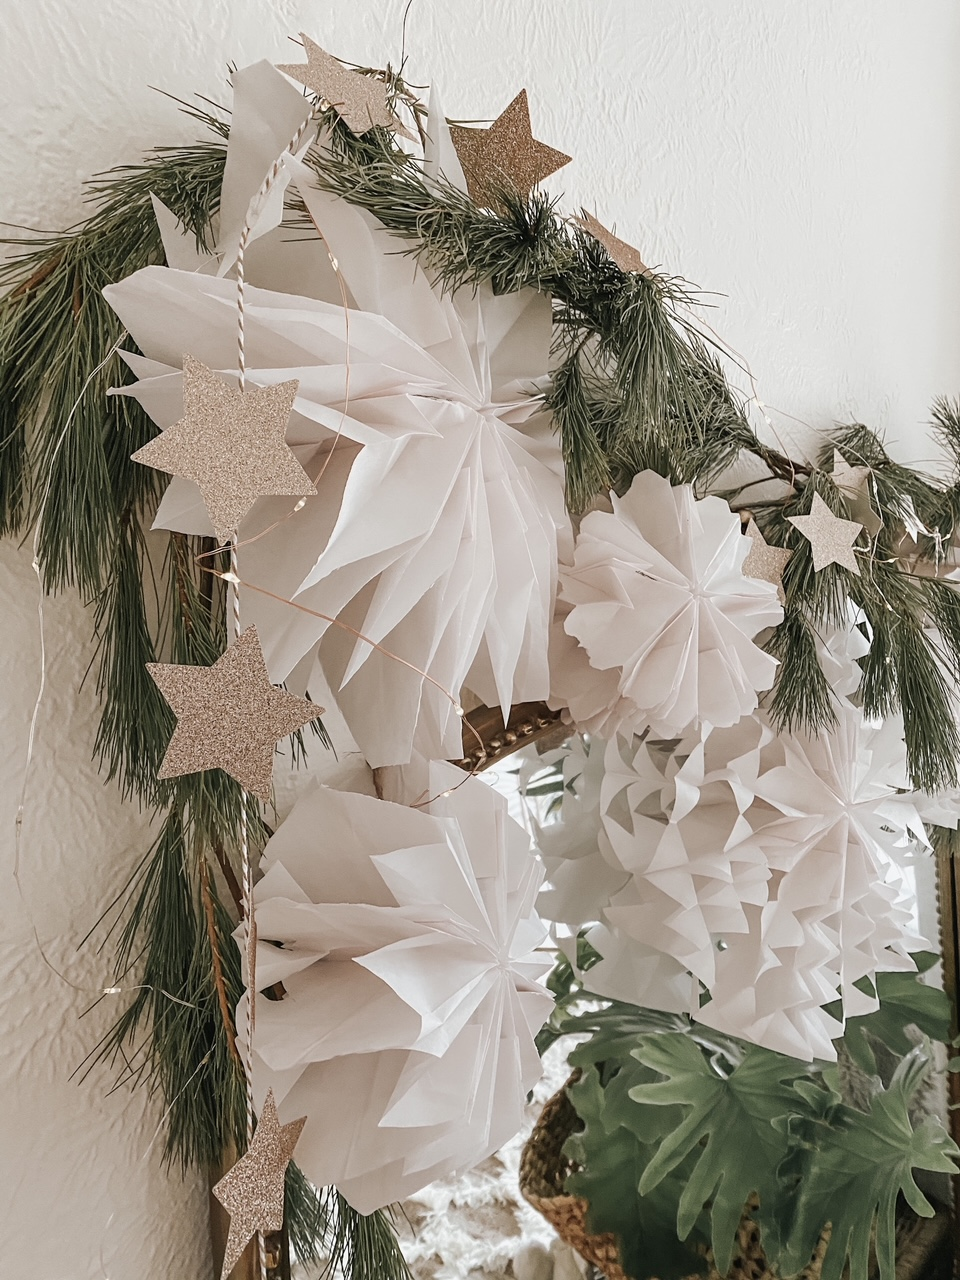 DIY Star Garland